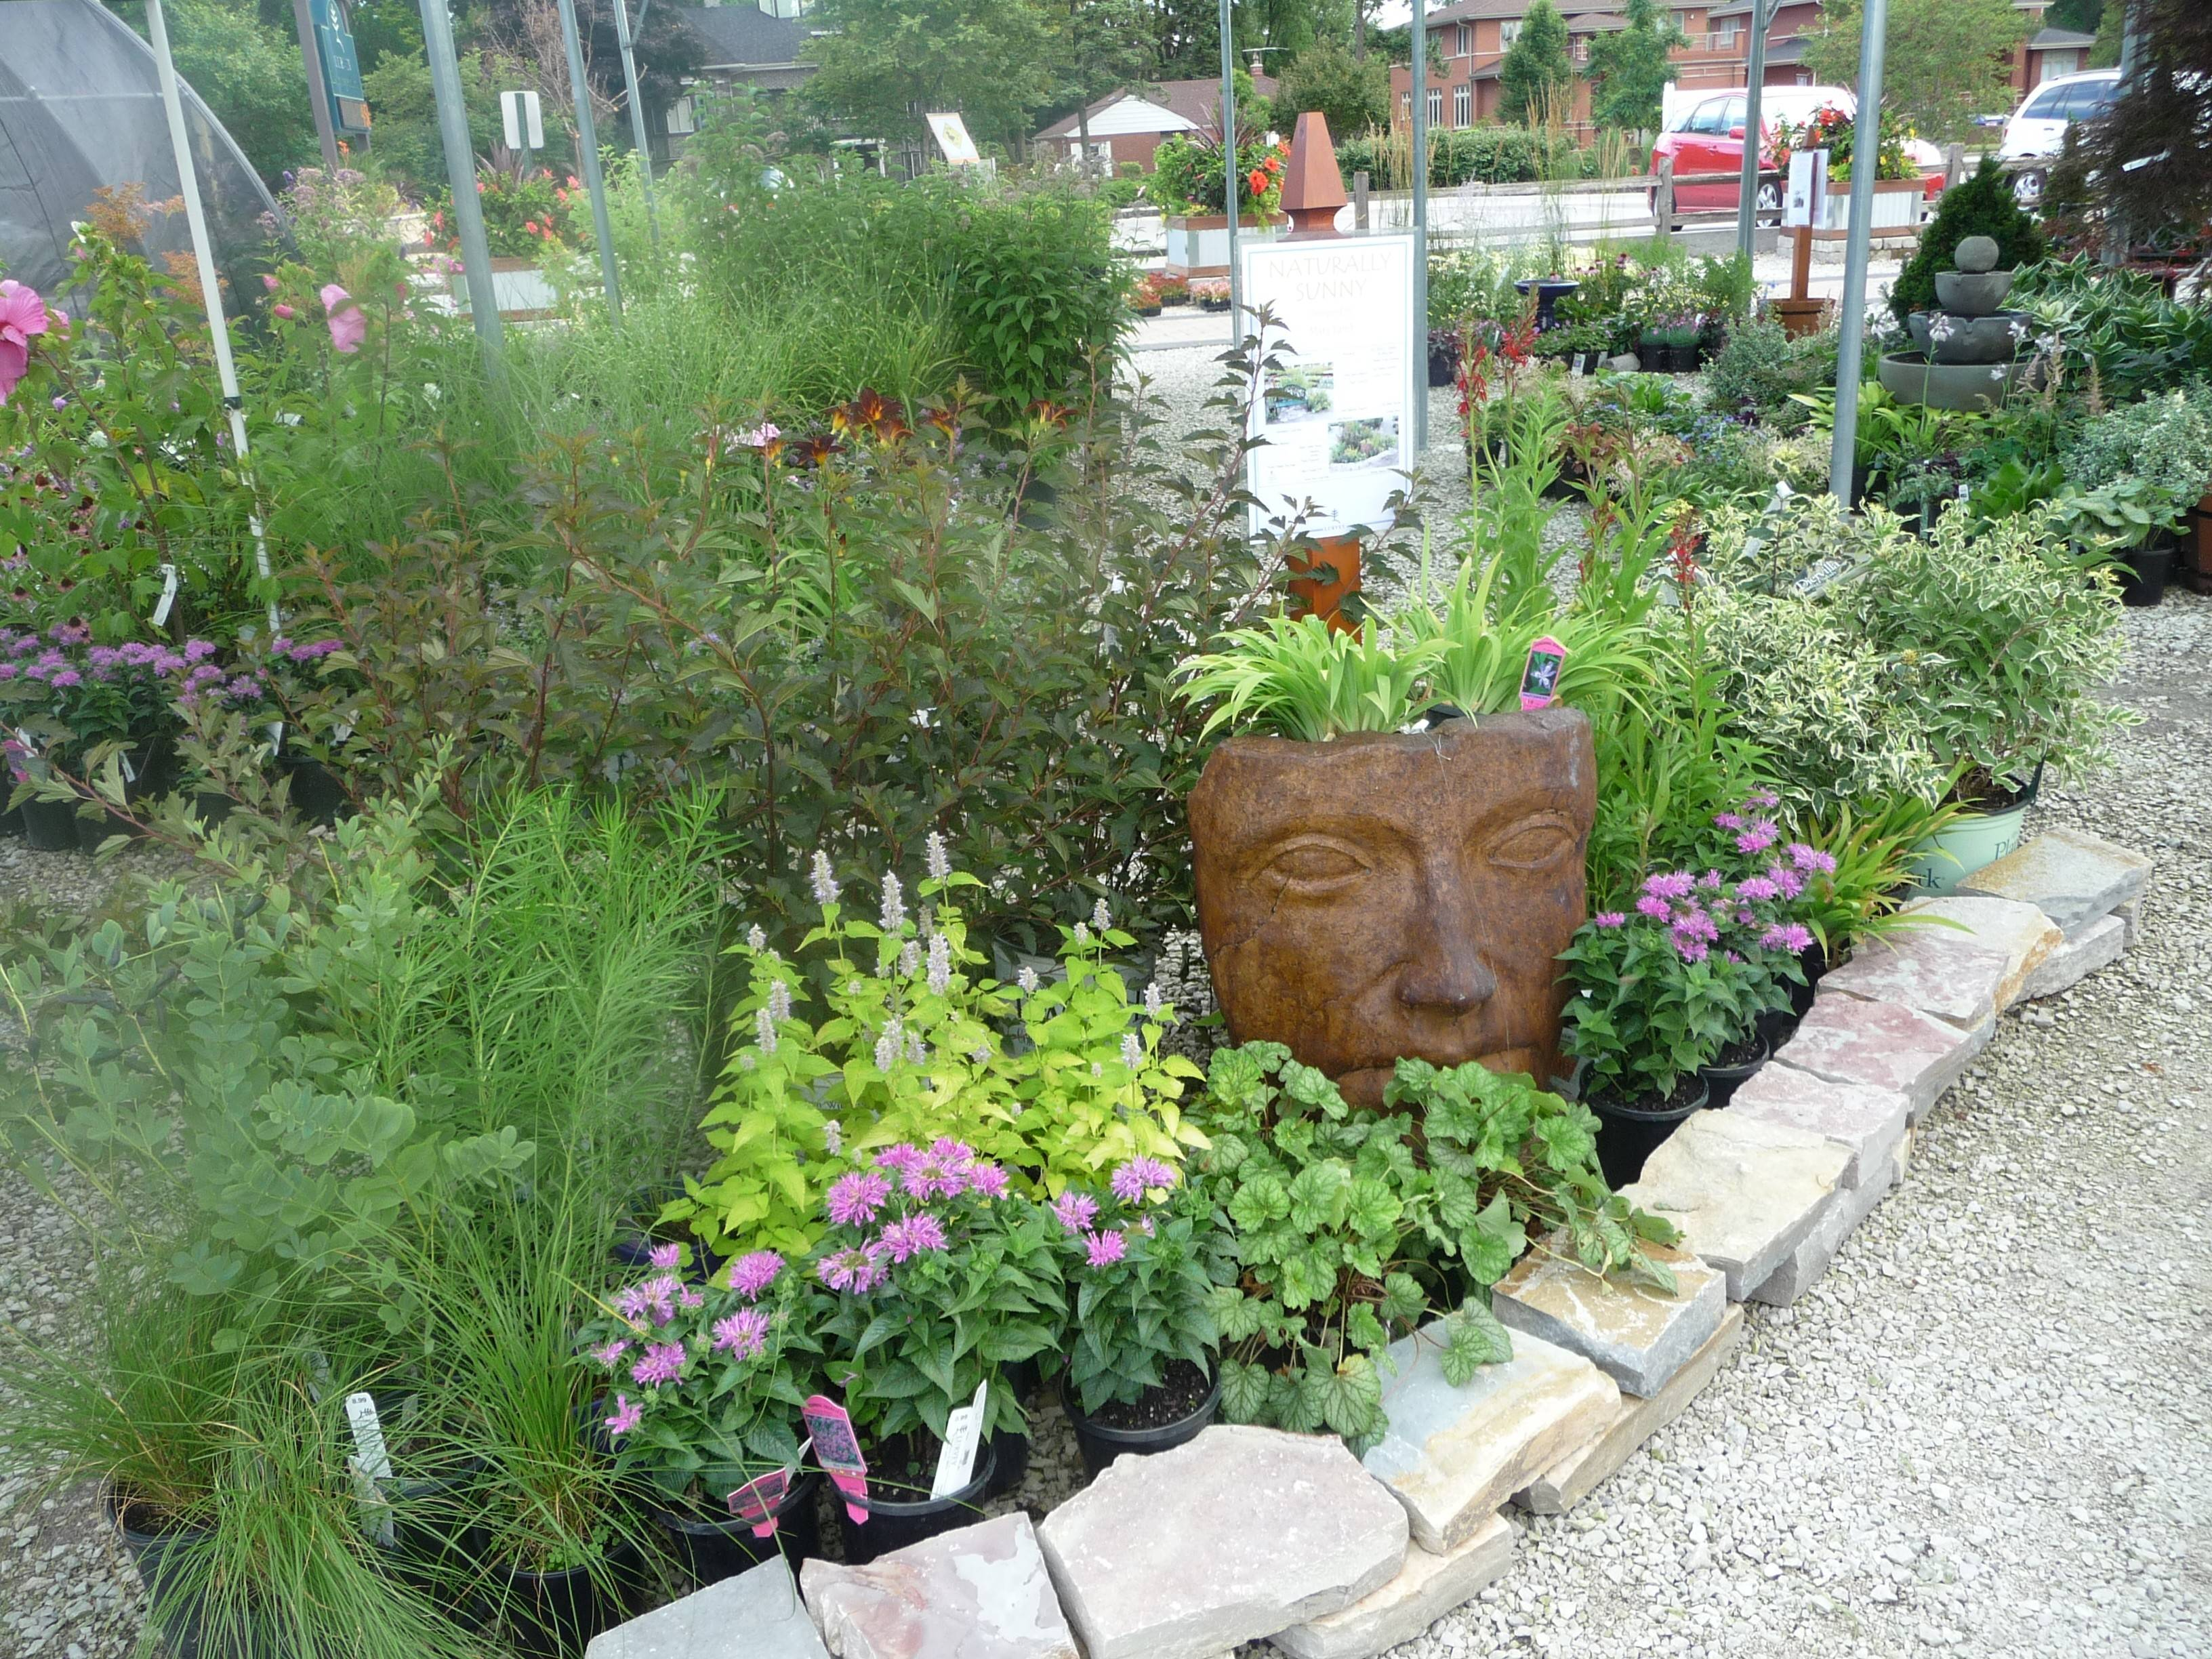 More suburban homeowners are looking for plants and shrubs for their yards that are low maintenance, said Jean Bragdon of Lurvey's Garden Center, Des Plaines.